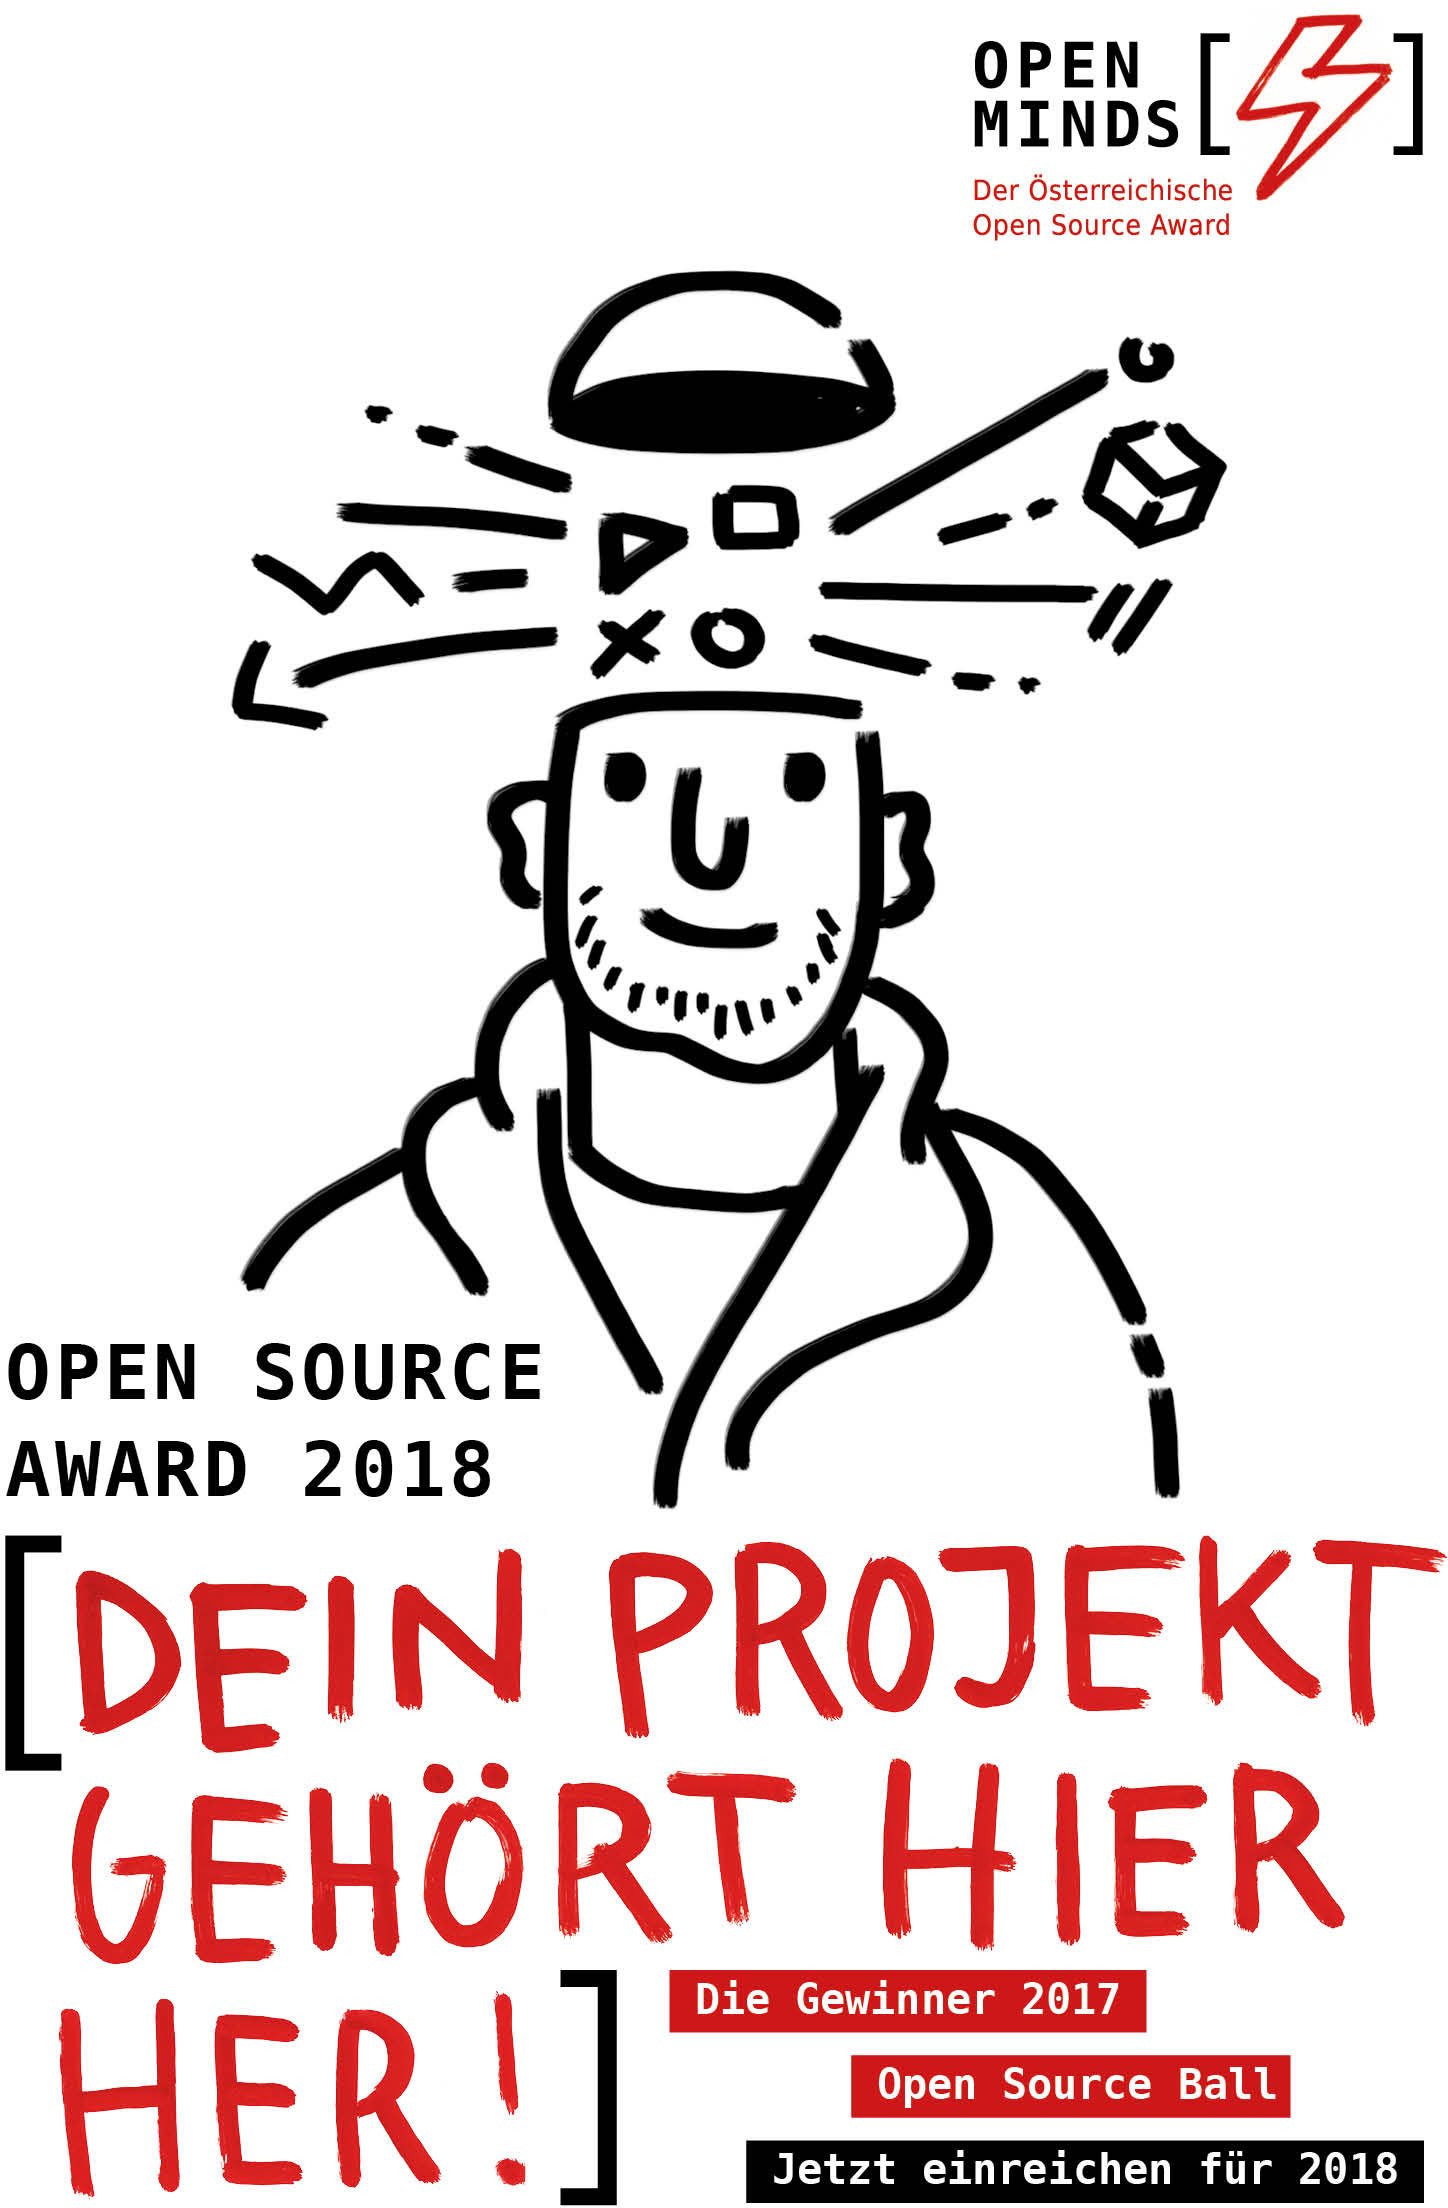 Open Minds Award 2018 Openmindsat